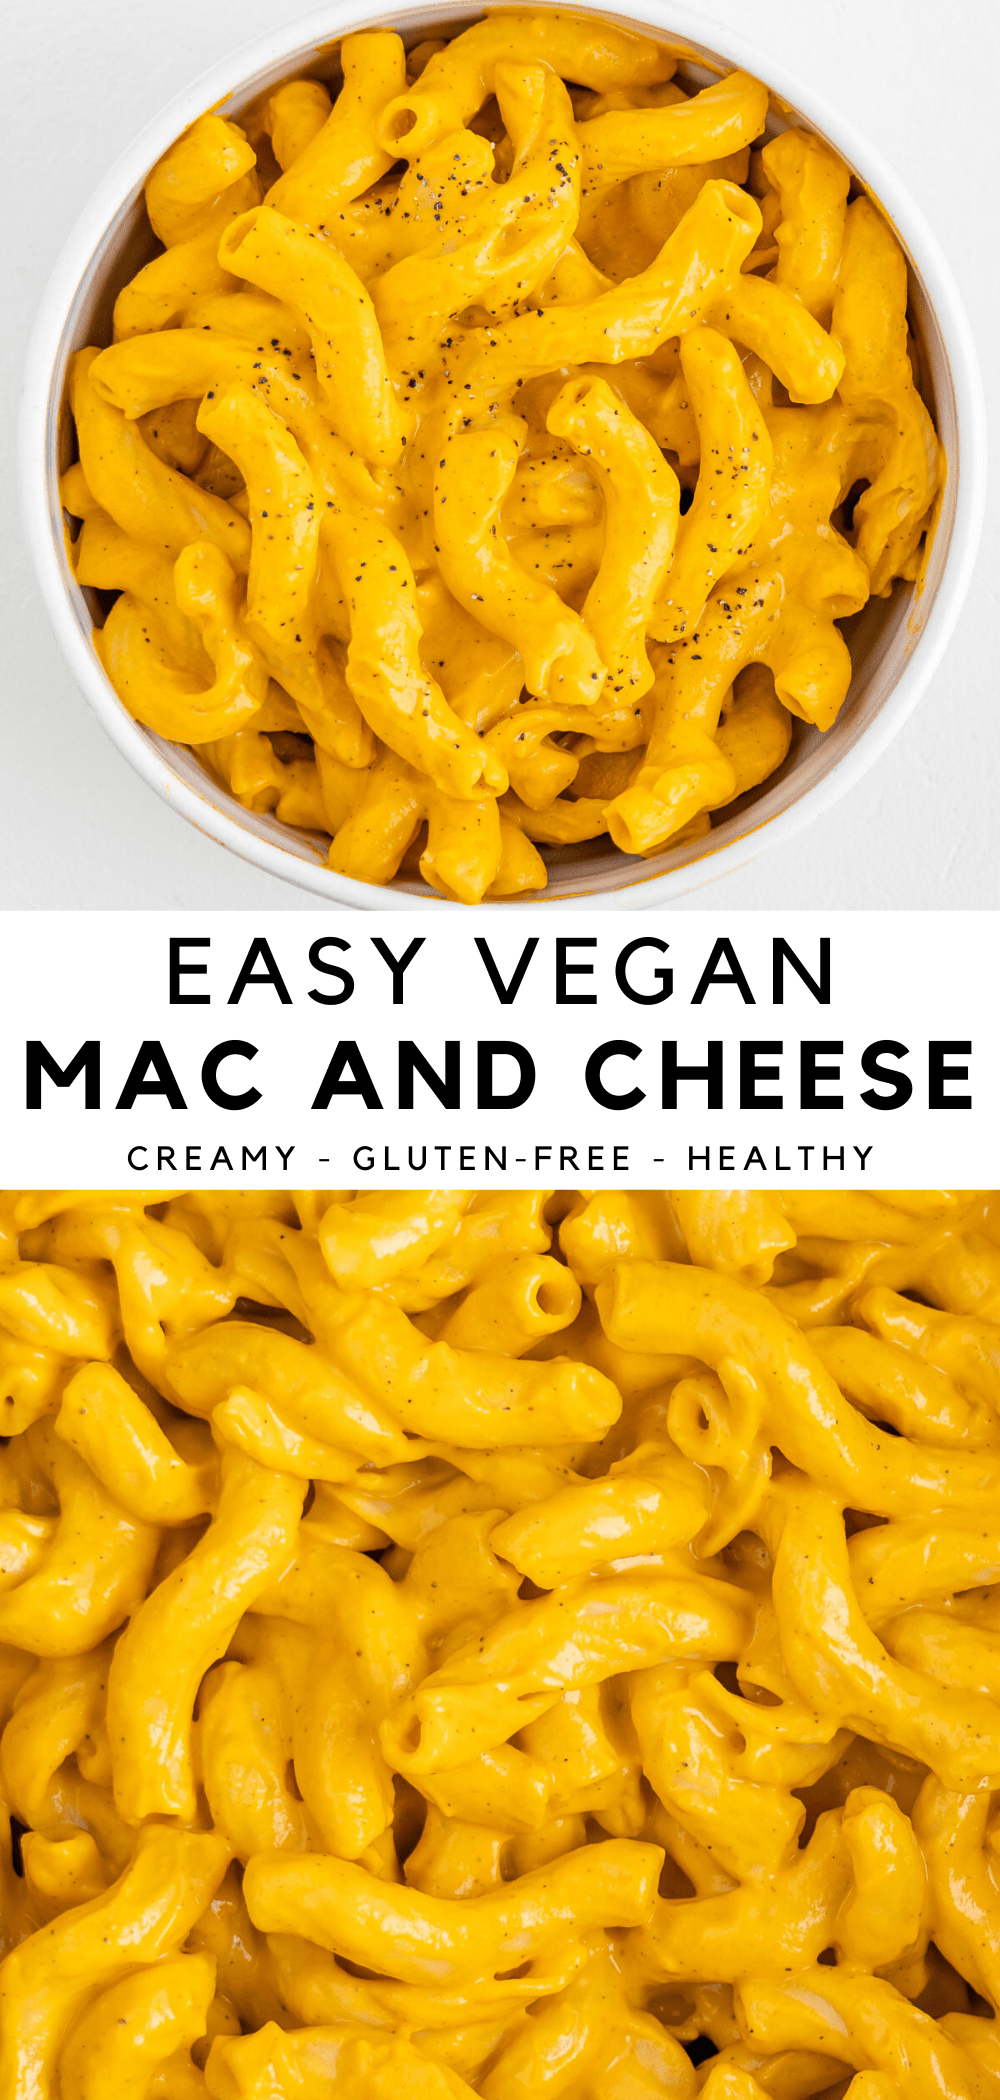 The Best Vegan Mac And Cheese Recipe It S Easy Delicious And Made With Healthy Ingredients Like Carrots Cashews And Nutritional Yeast This Dairy Free And In 2020